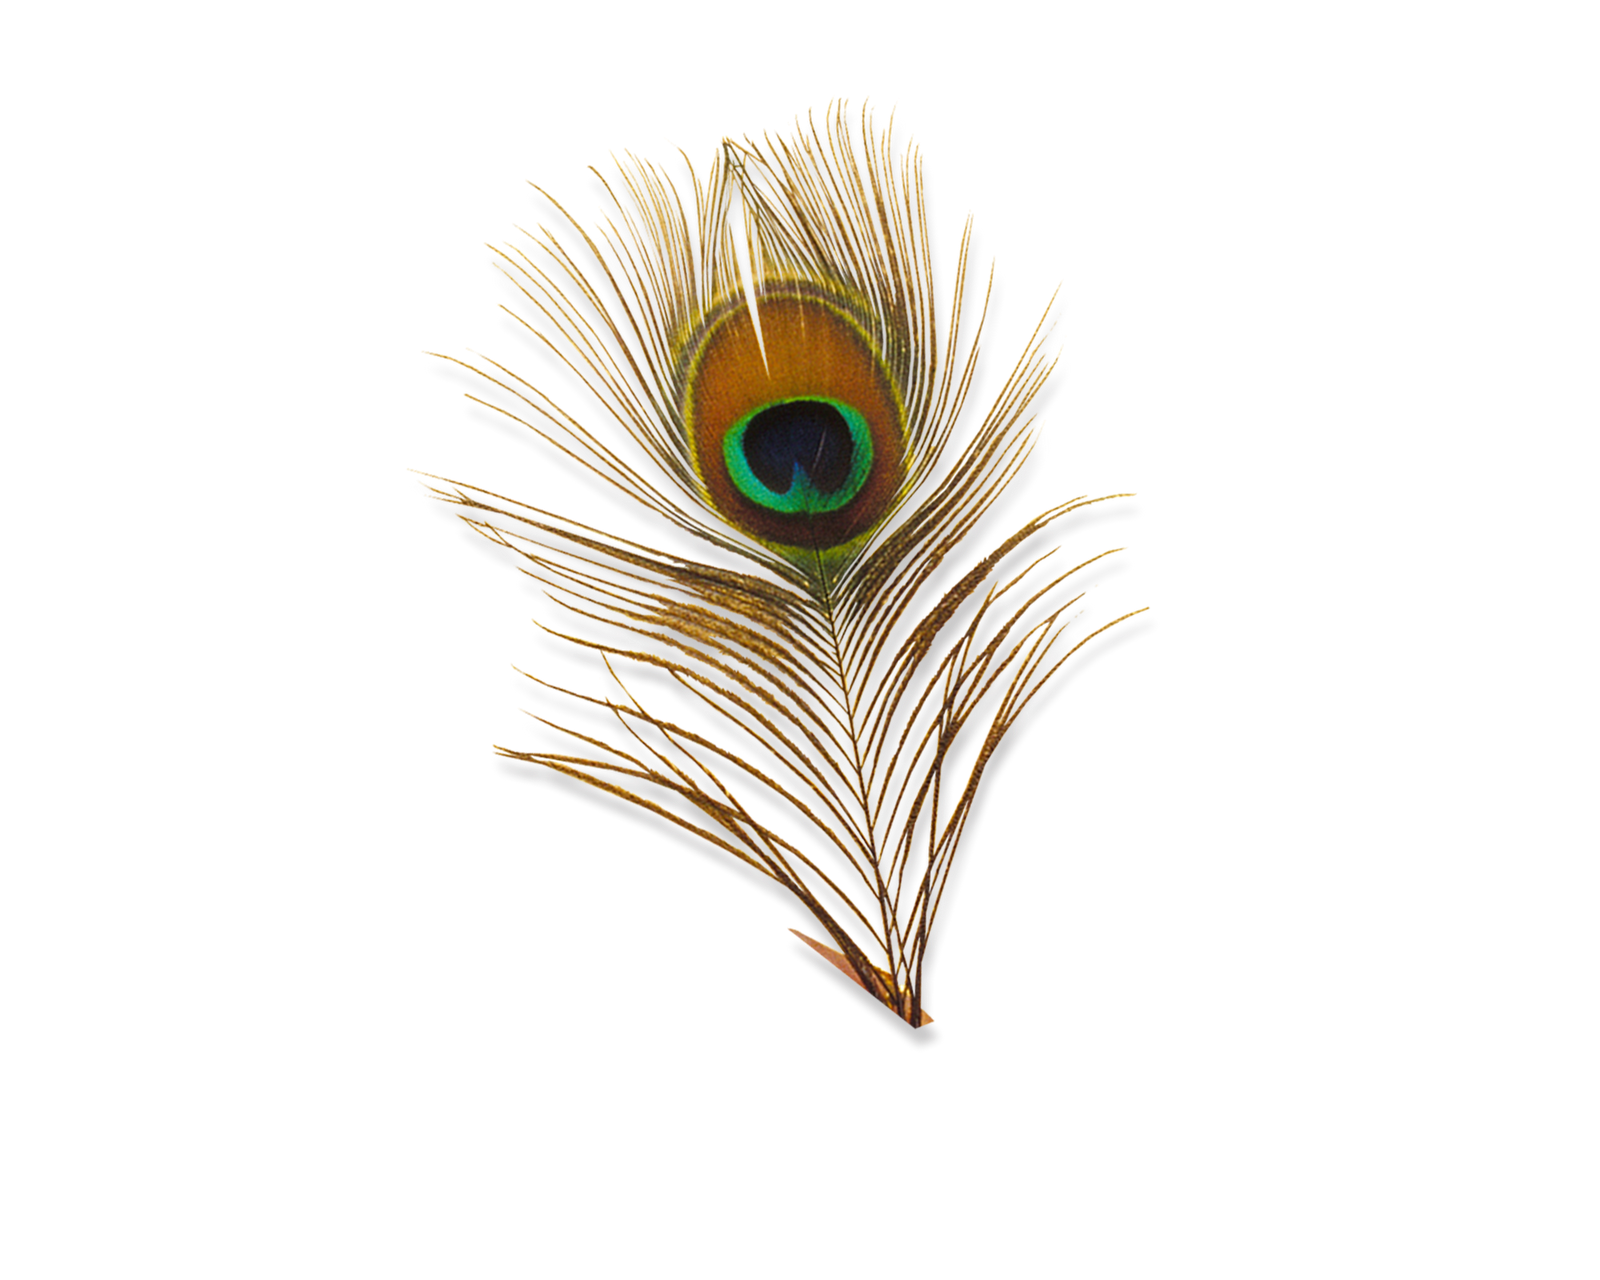 Peacock PNG Transparent Image image #22895